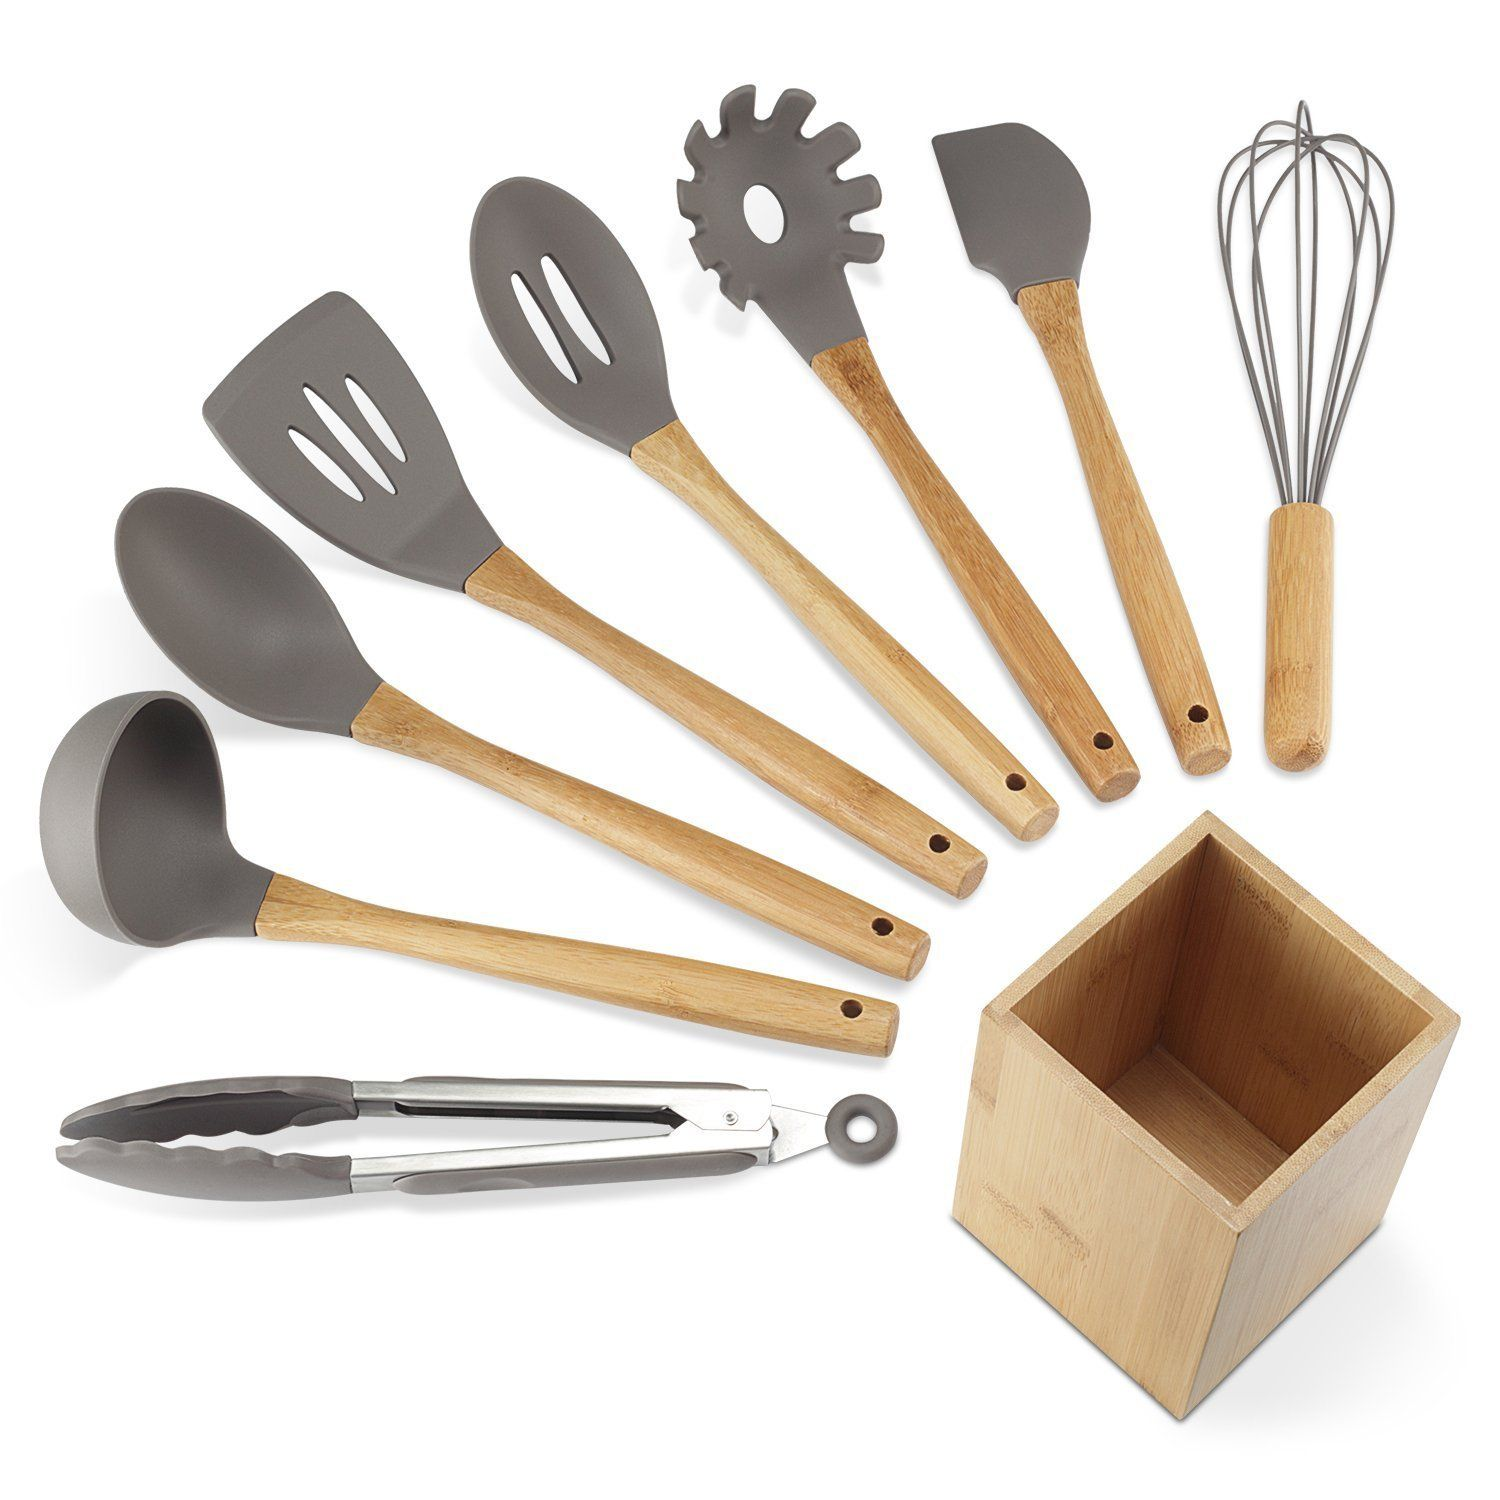 Top 10 Best Silicone Utensil Set Reviews In 2018